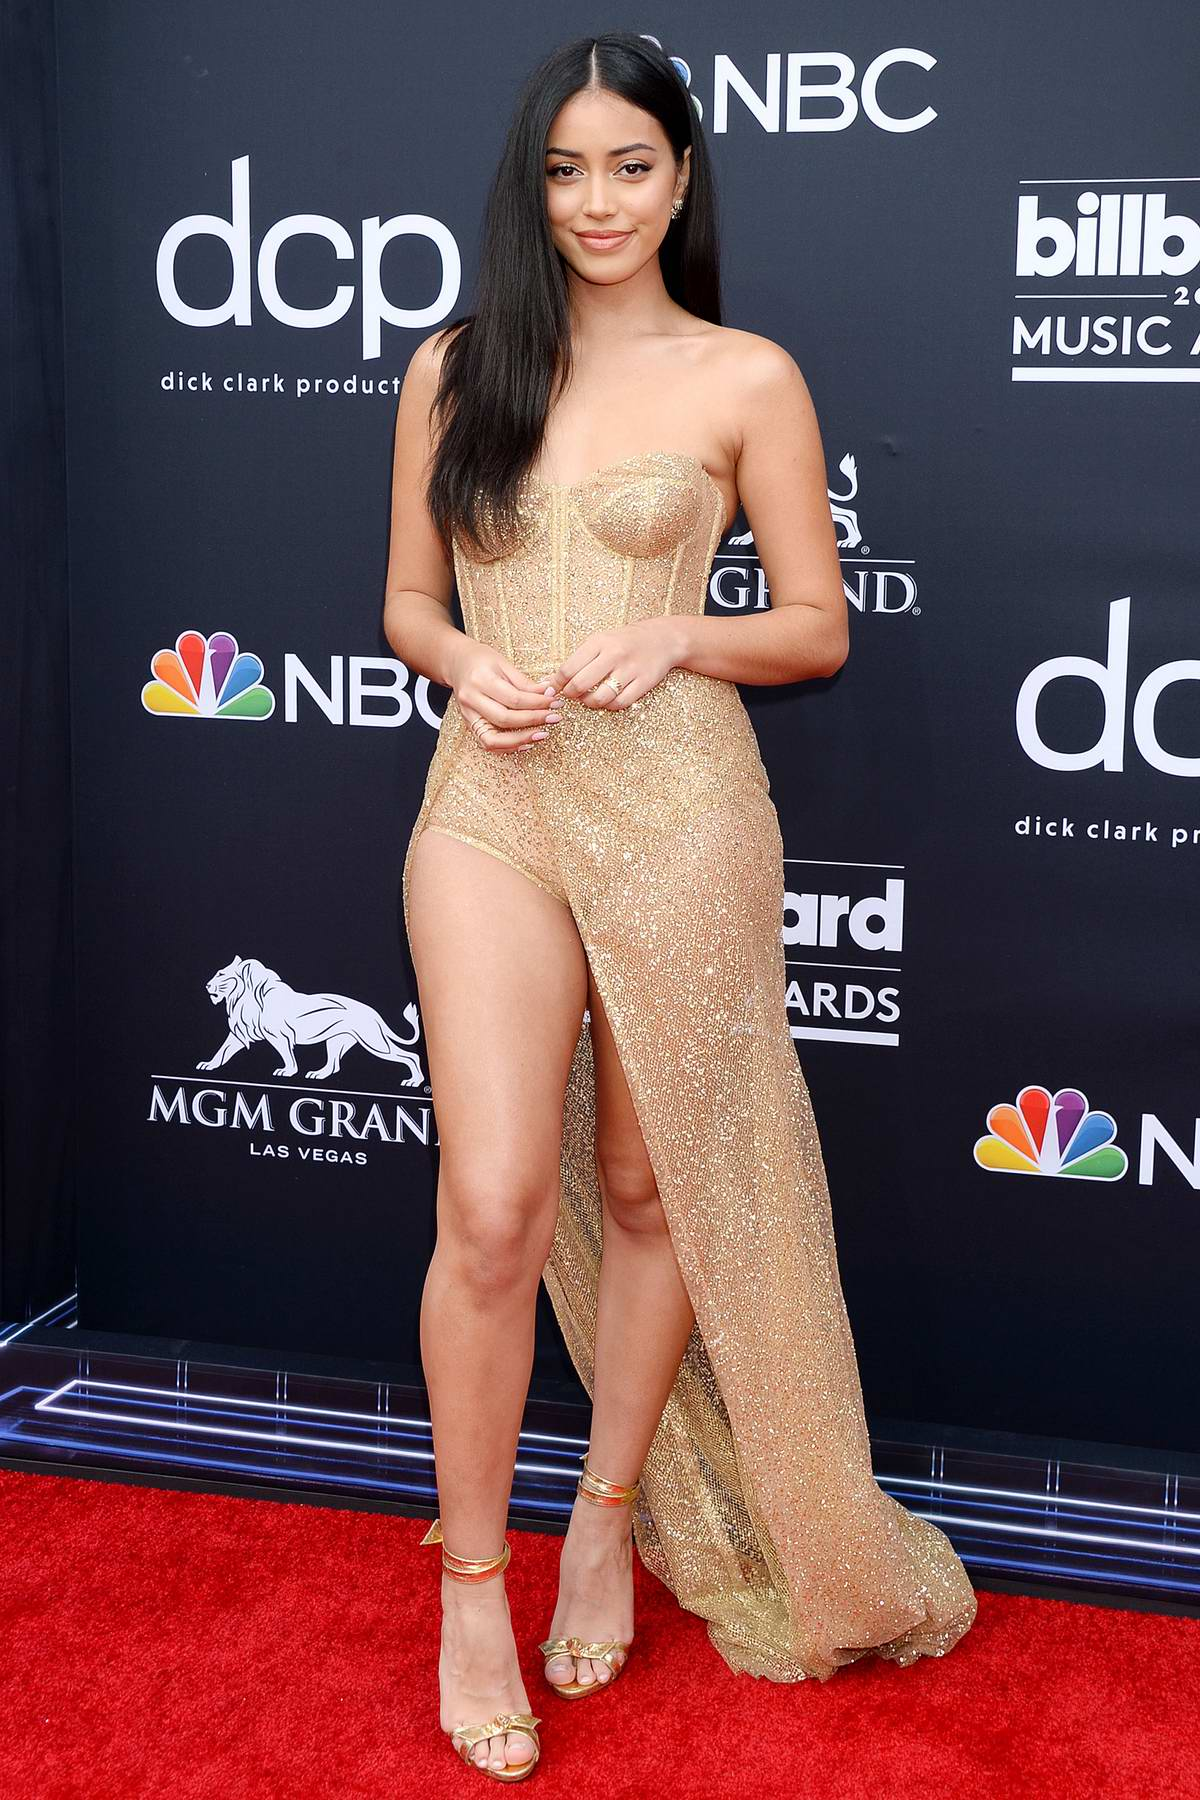 Cindy Kimberly attends the 2019 Billboard Music Awards at MGM Grand Garden Arena in Las Vegas, Nevada